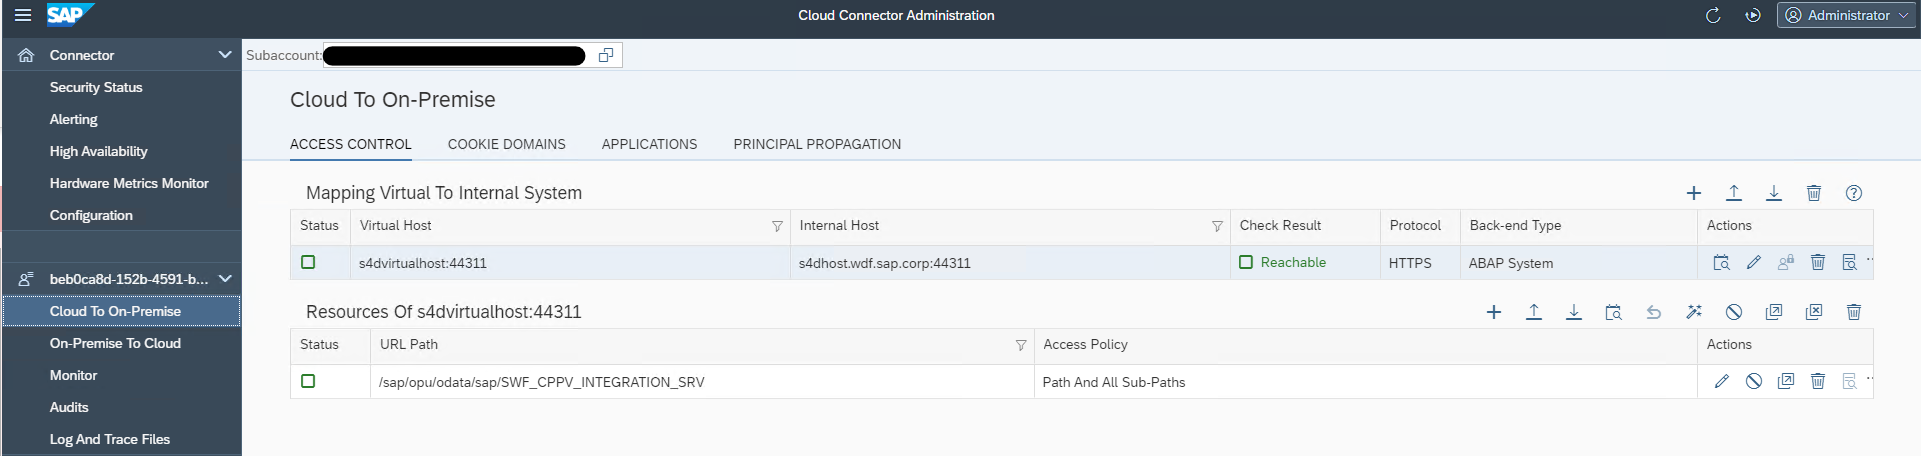 Cloud%20Connector%20Administration